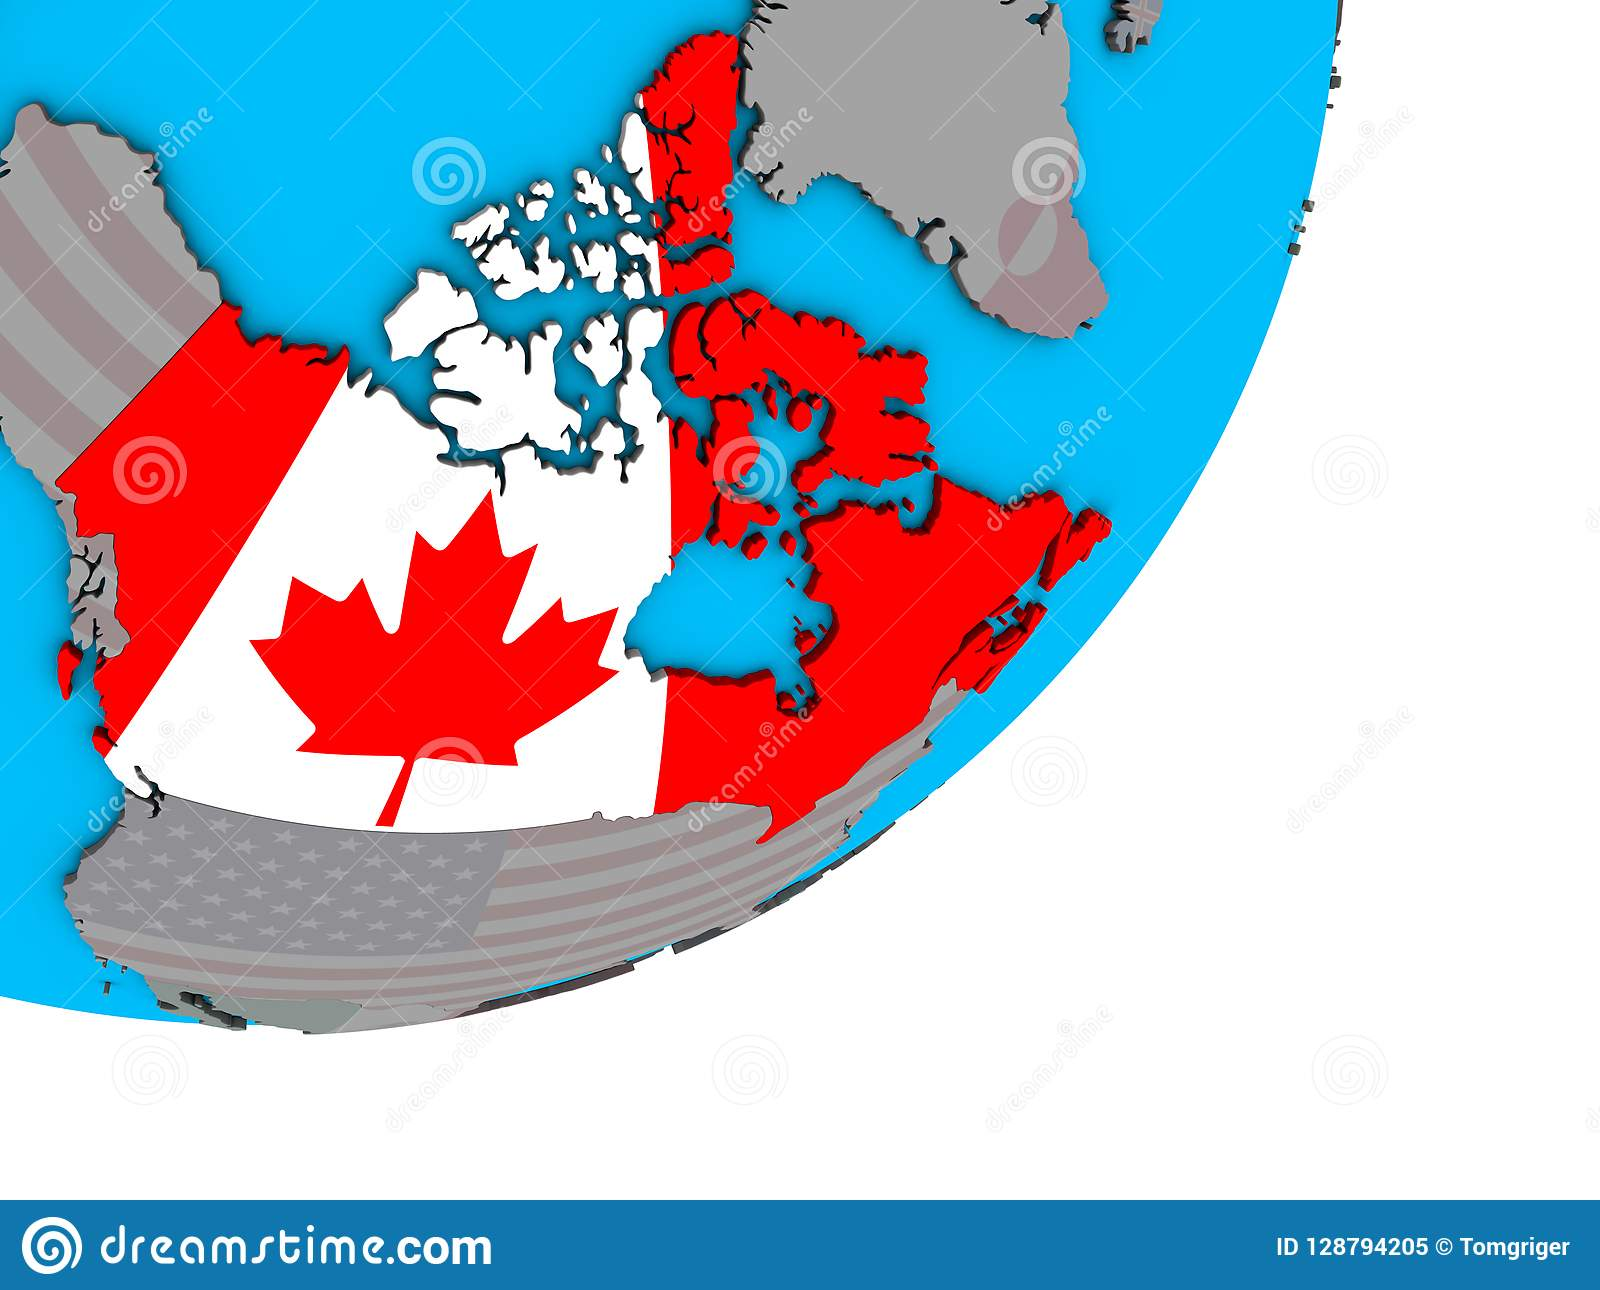 Map Of Canada On Globe.Map Of Canada With Flag On Globe Stock Illustration Illustration